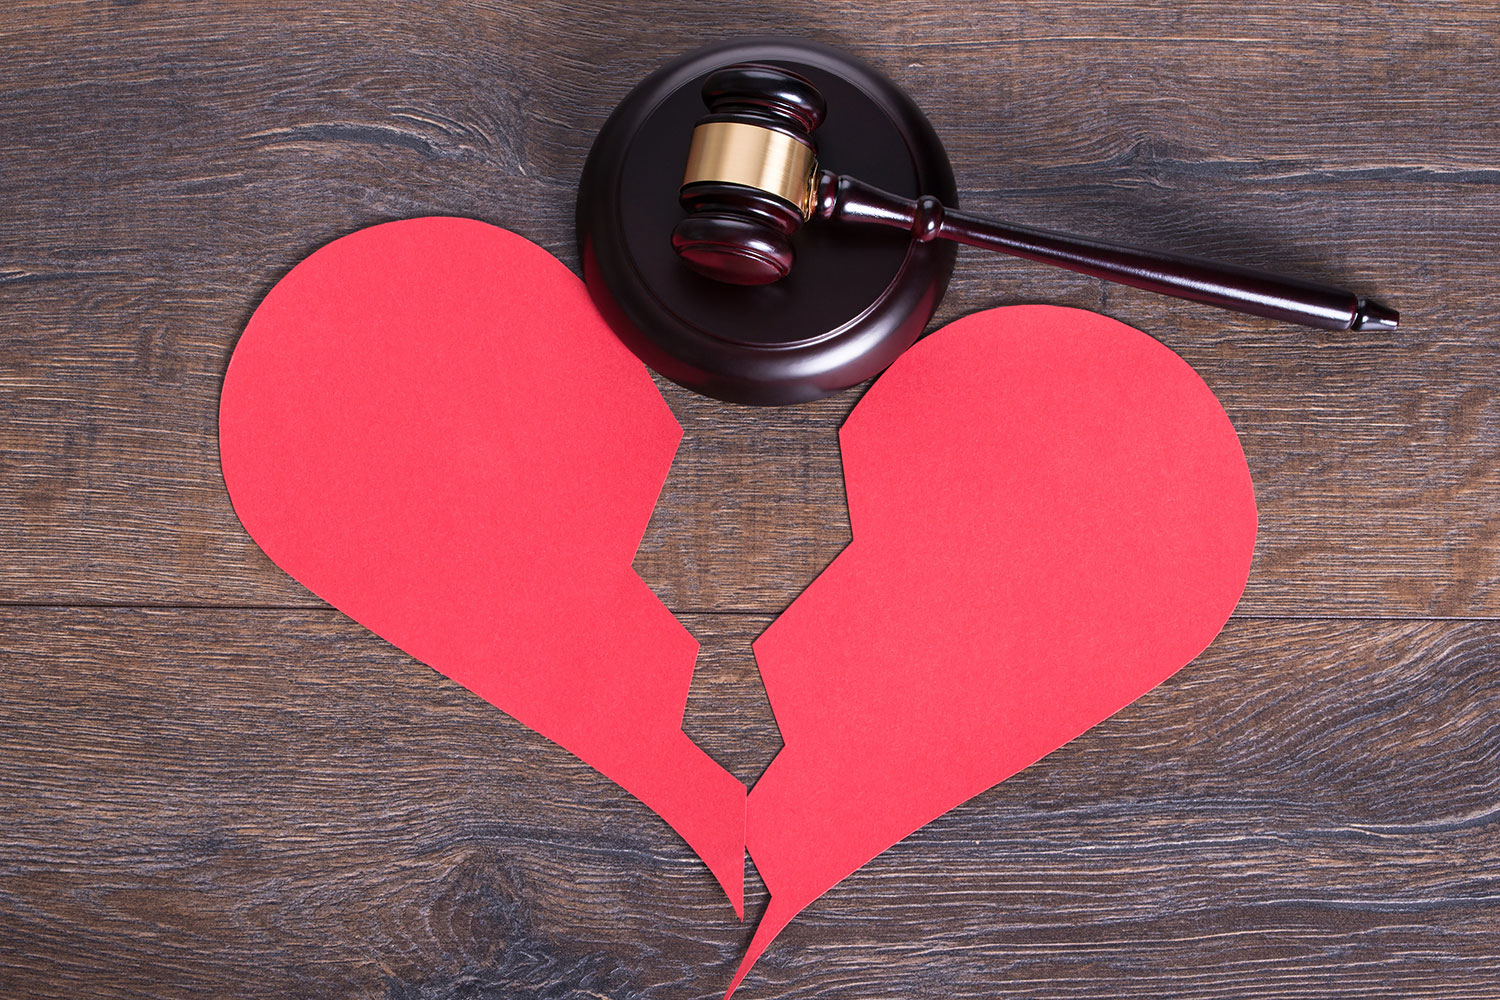 Updates To Illinois' Marriage And Dissolution Of Marriage Act (IMDMA)